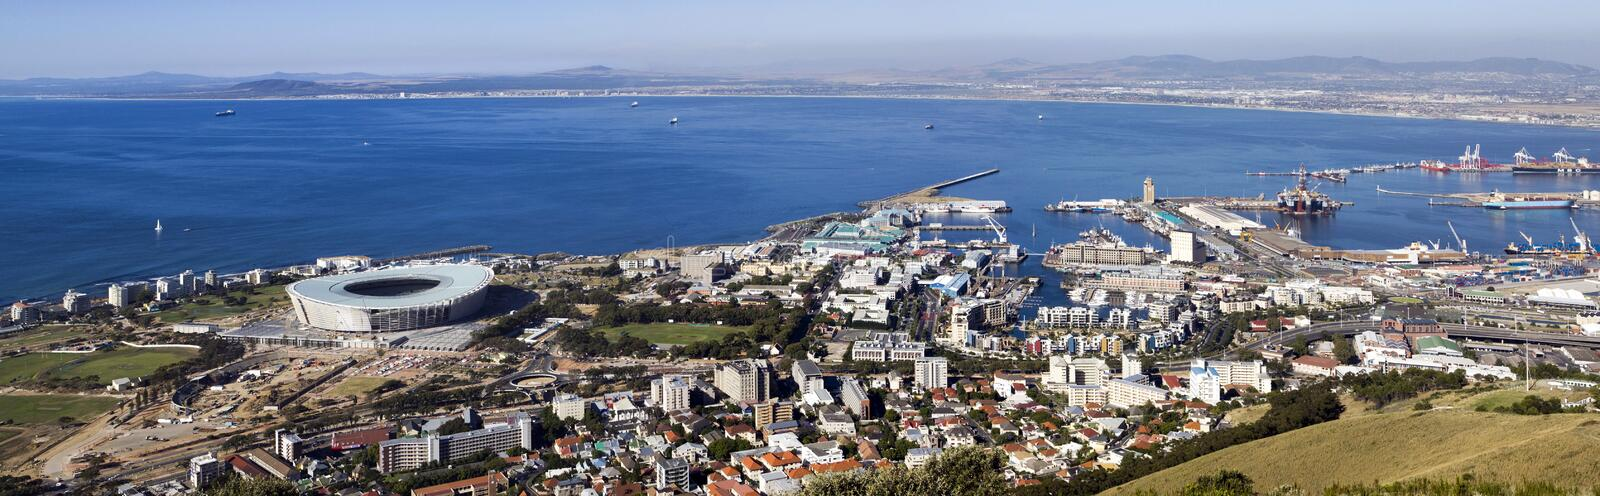 Download Cape Town soccer stadium stock photo. Image of host, harbour - 13007778